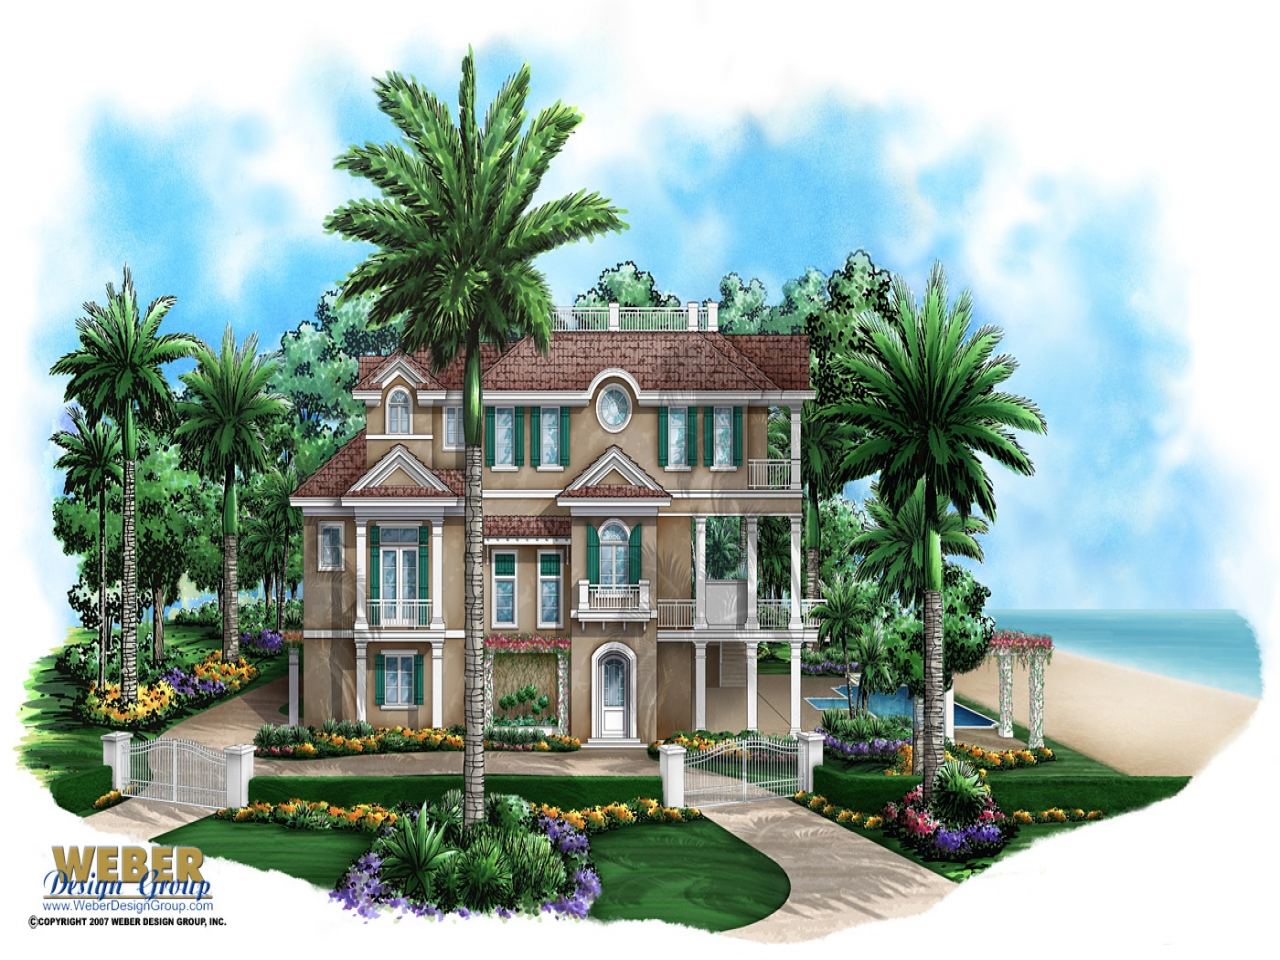 Beach house plans for homes on pilings small beach house for Small beach house plans on pilings